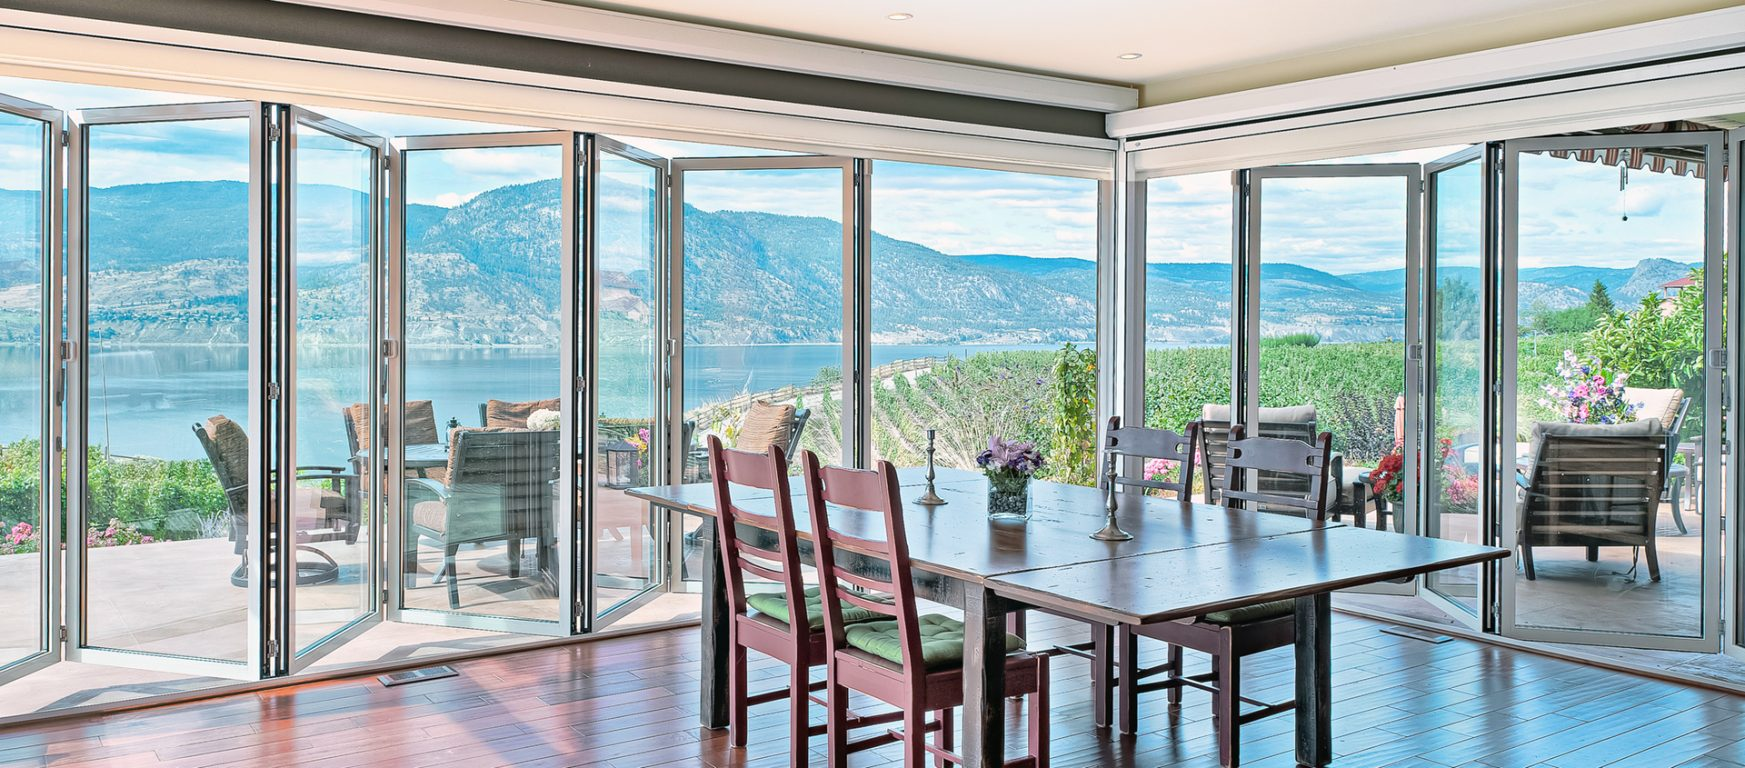 Sunflex SF75 exterior sliding glass doors